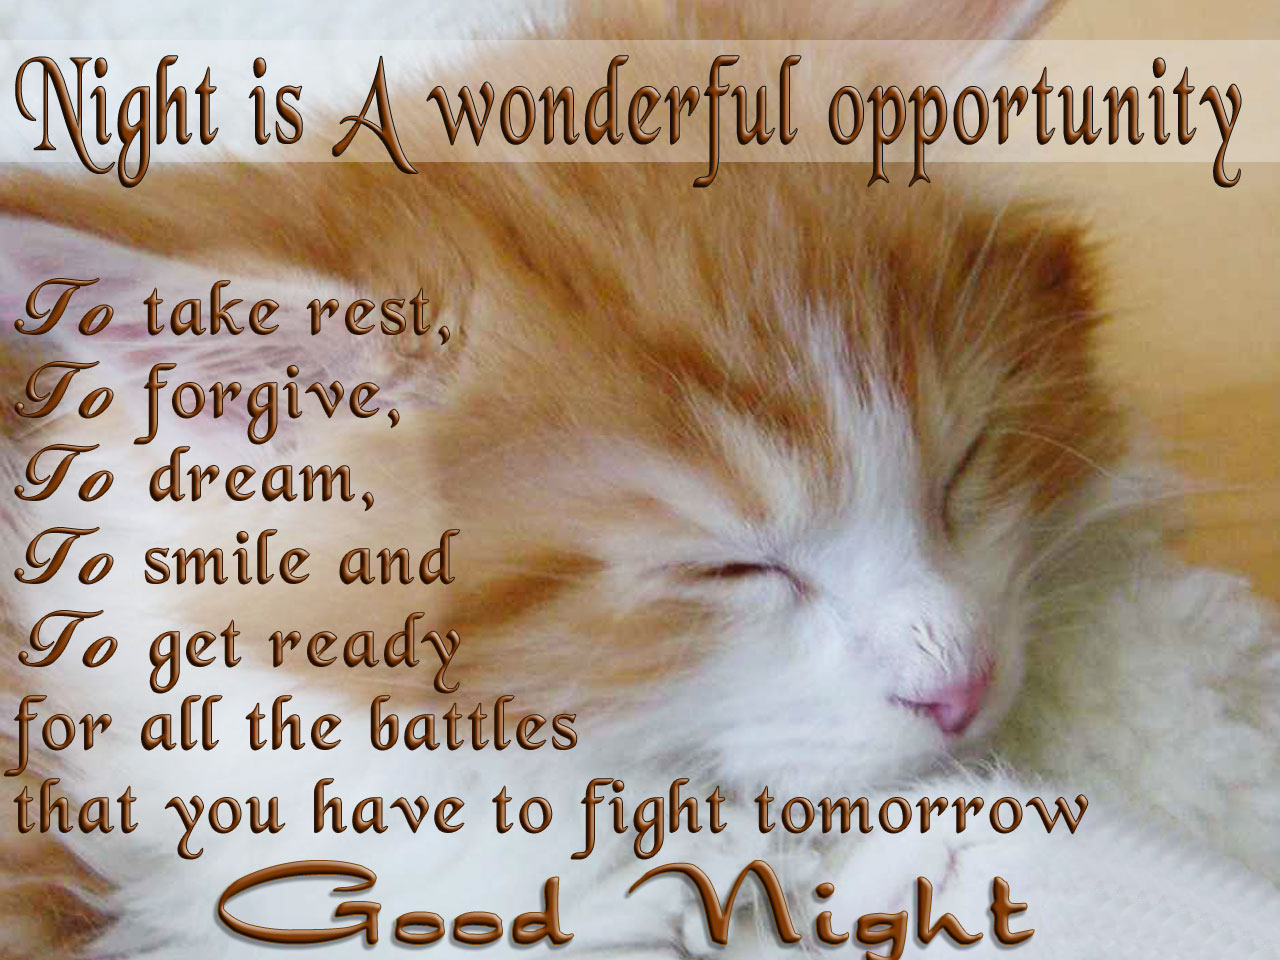 Hd Wallpaper Graphic Good Night Greetings Quotes Wishes Hd